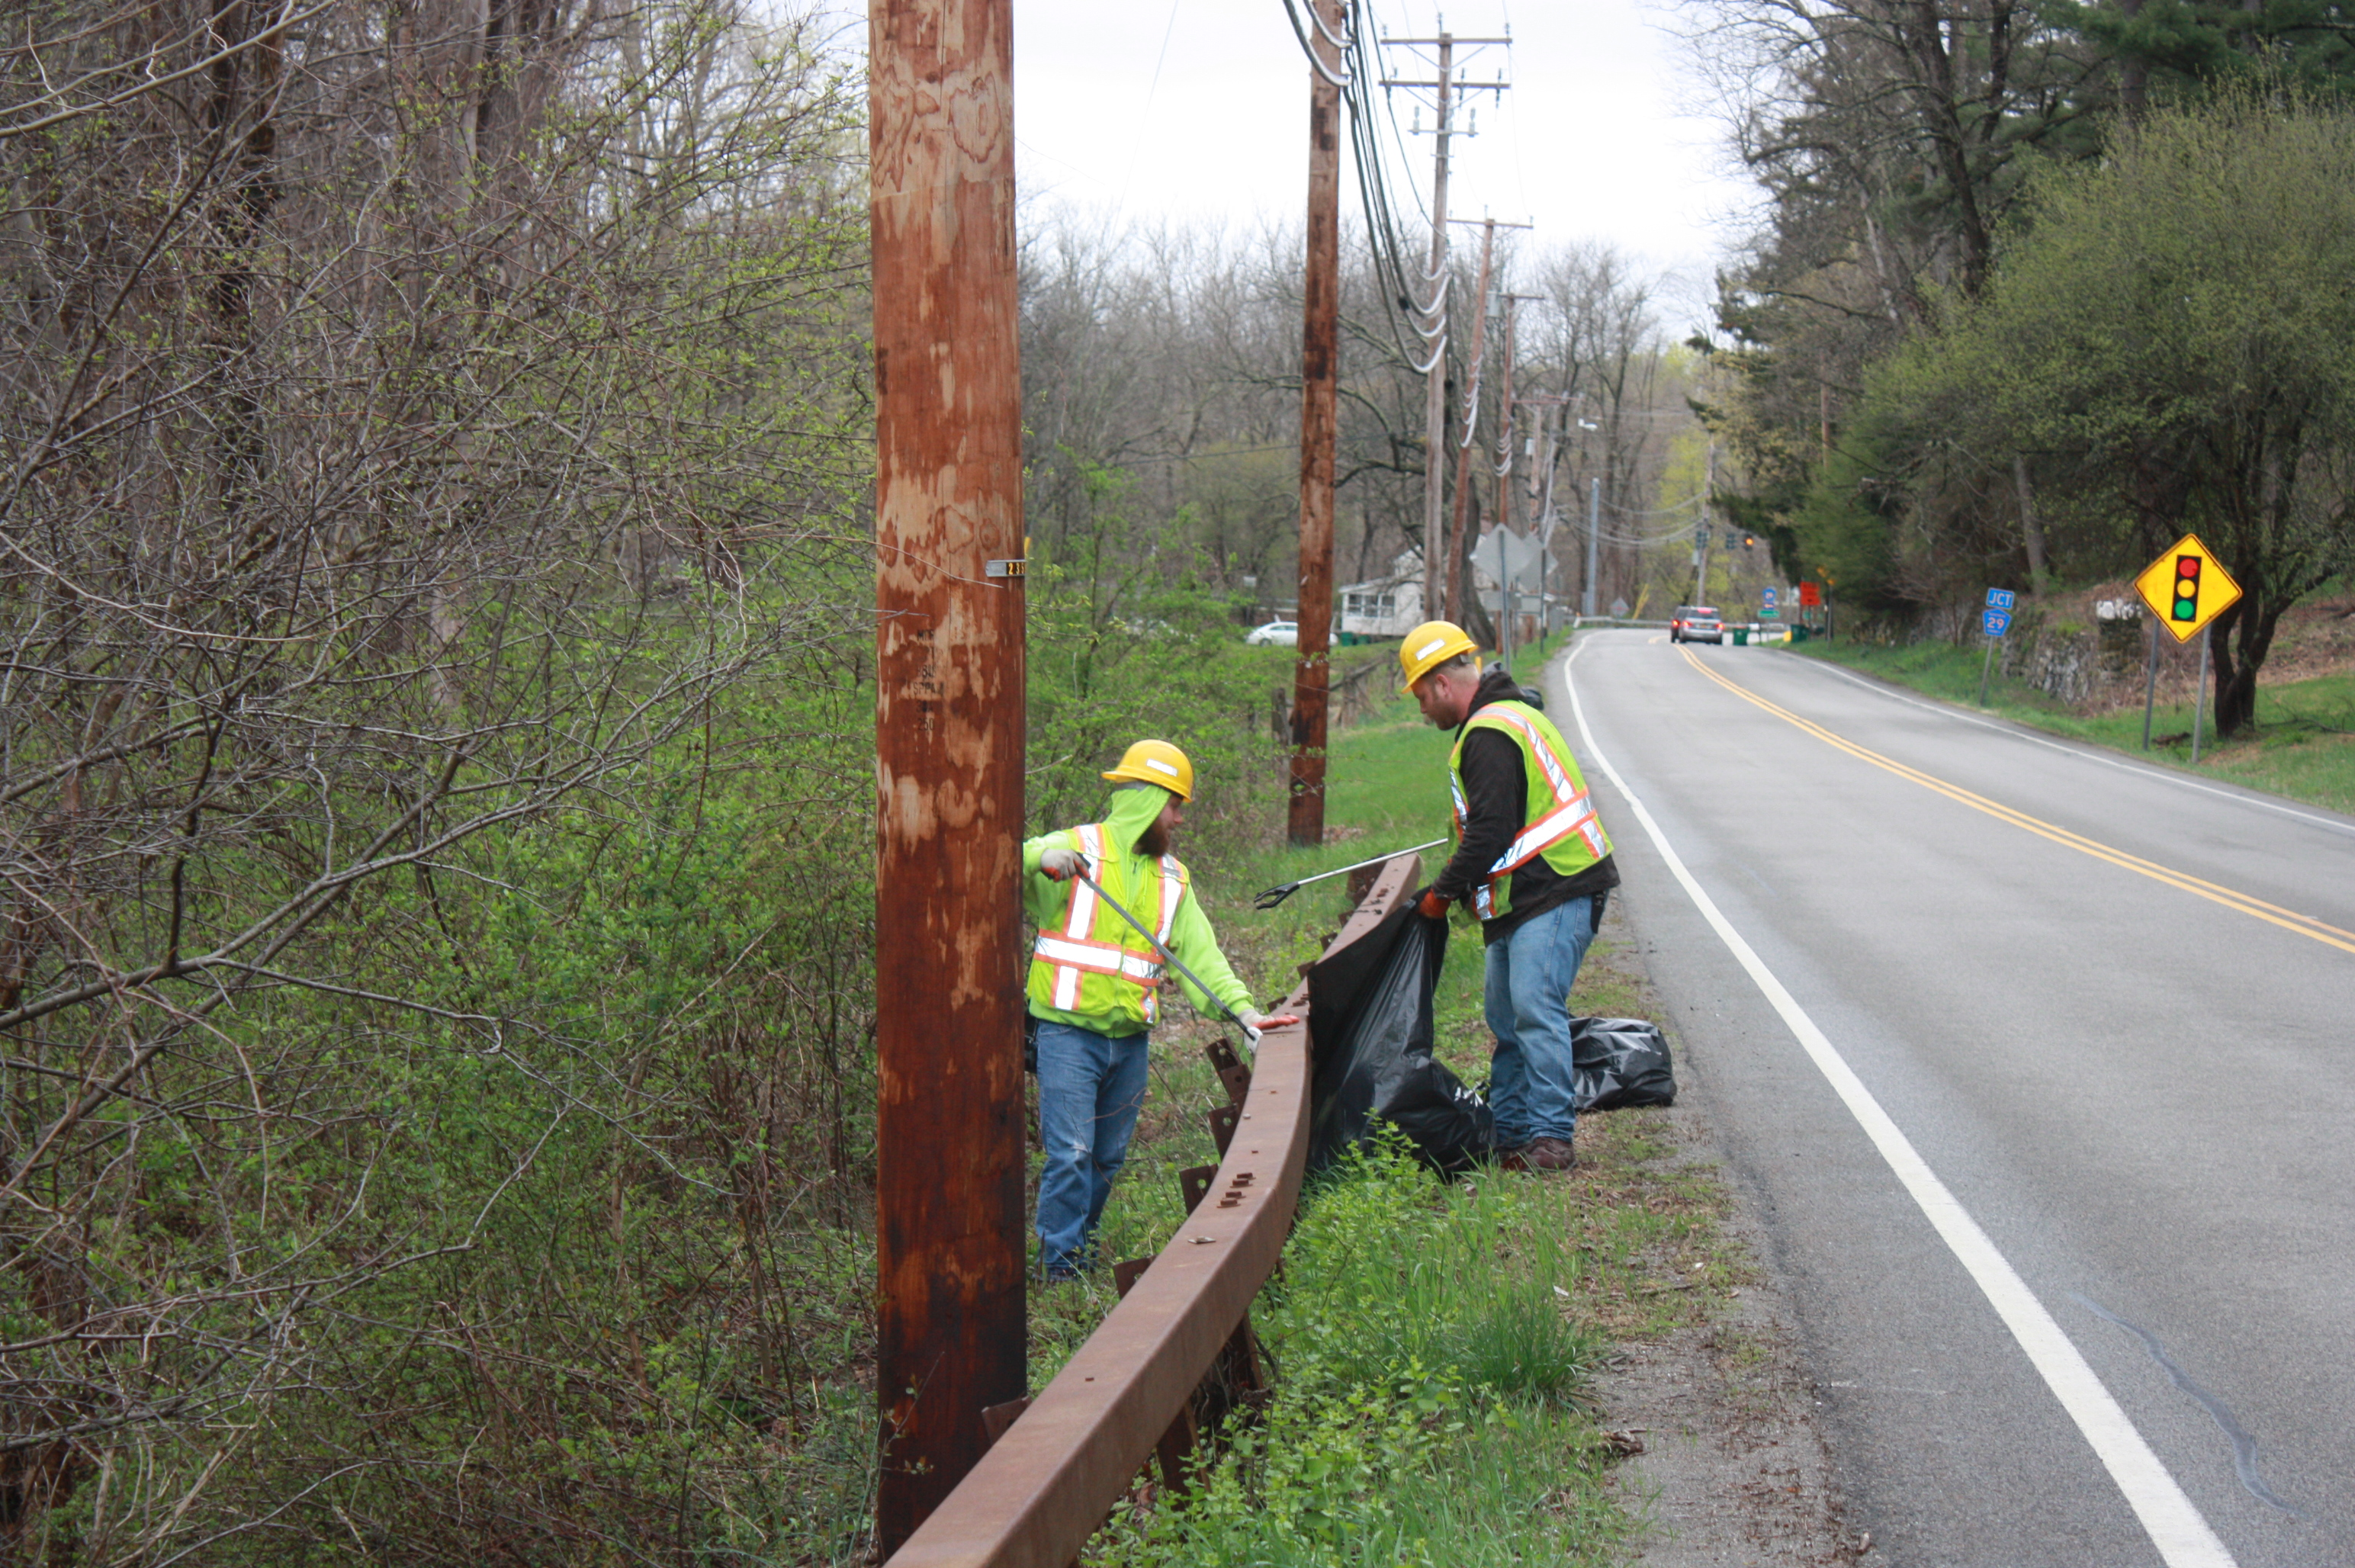 As part of this year's Earth Day celebration, the Dutchess County Department of Public Works (DPW) Highway  Division will clean litter along some of the County's most highly trafficked roadways starting on Thursday, April 19th, and continuing April 20th, 23rd and 24th.